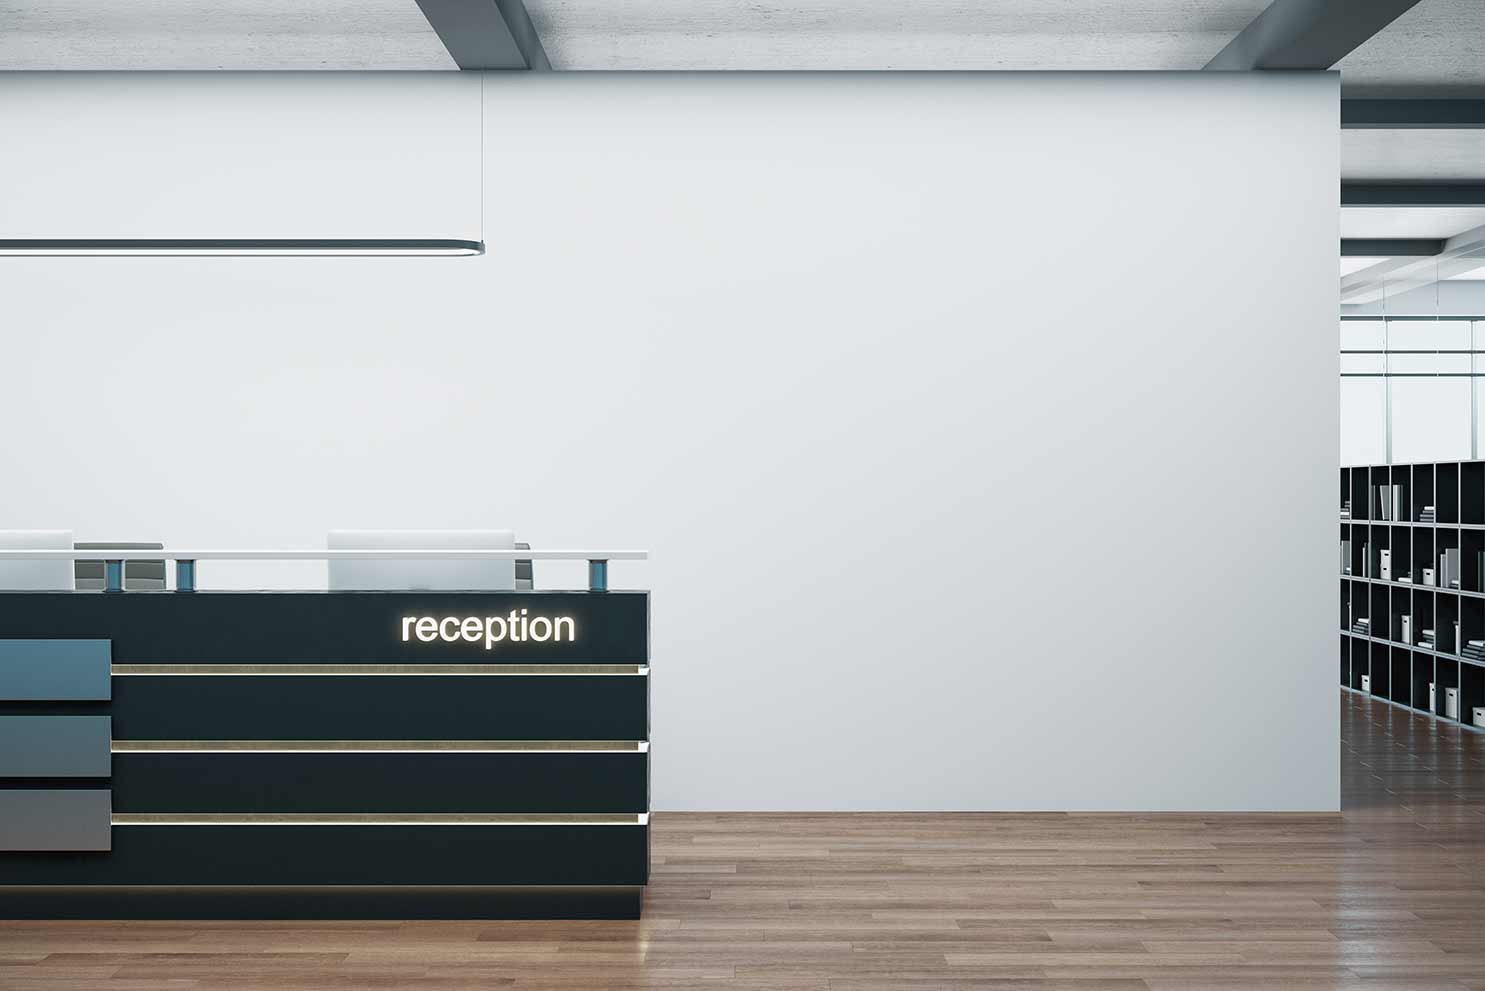 Reception desk for a security company